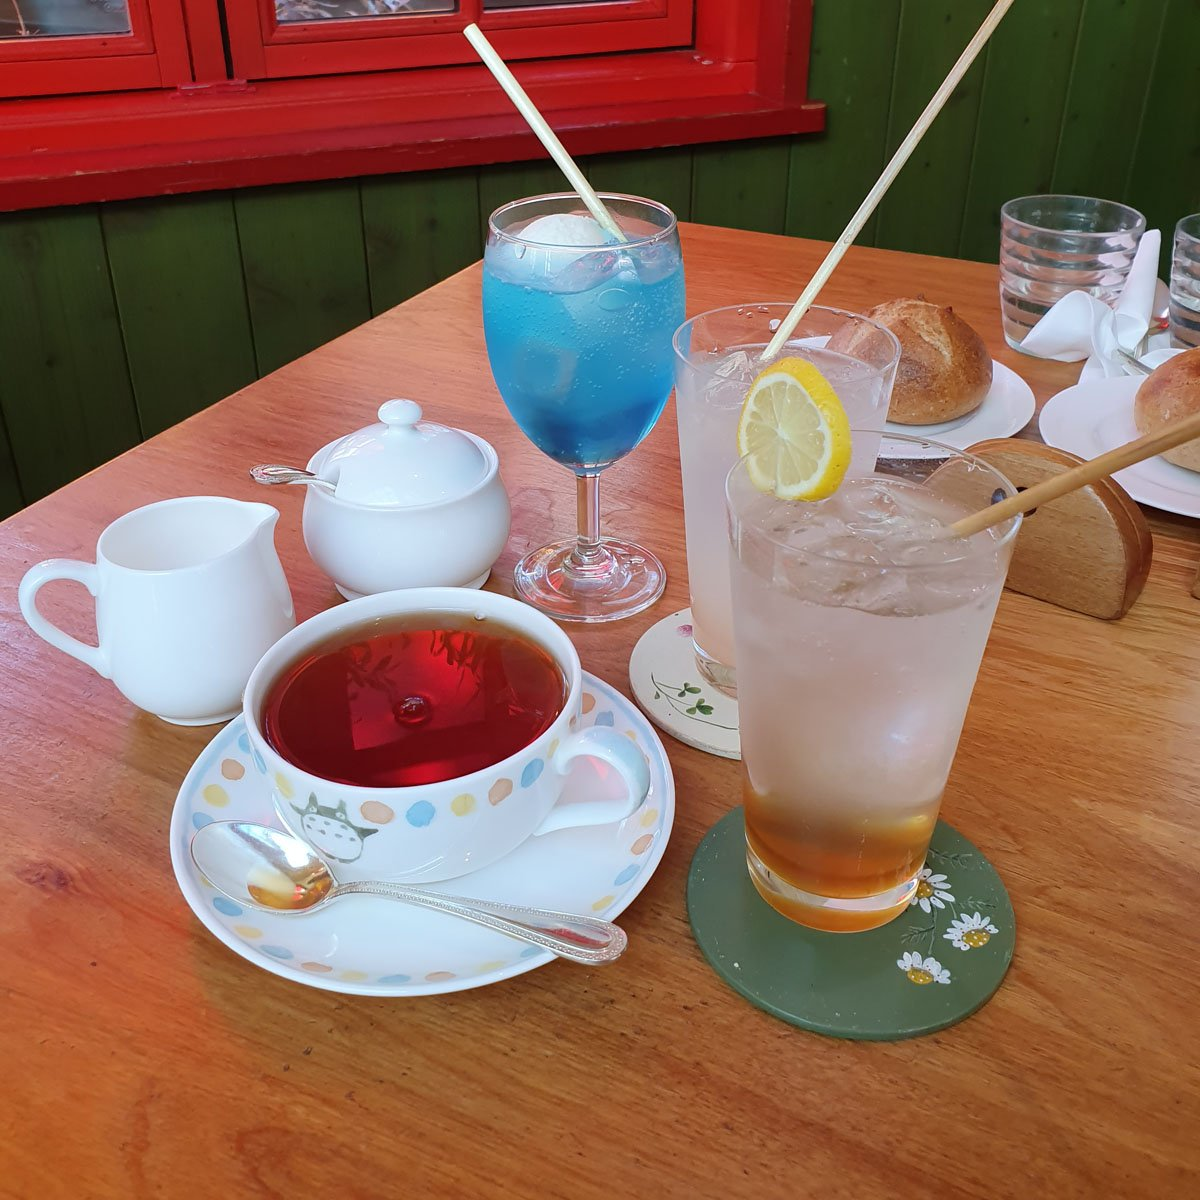 Our selection of drinks from Ghibli Cafe